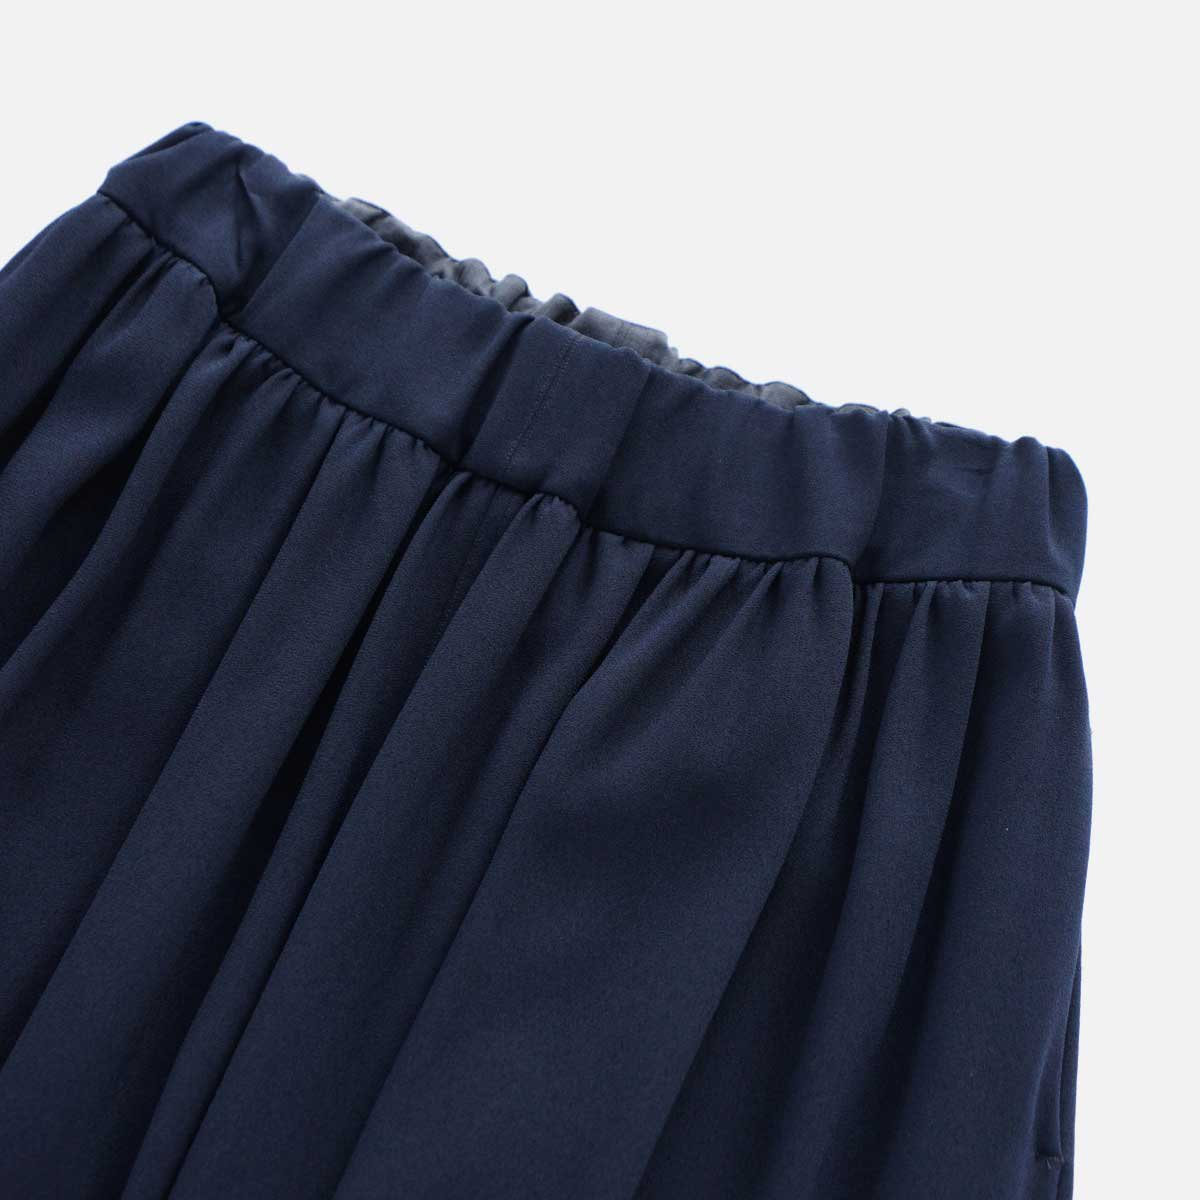 NO CONTROL AIR ACETATE & POLYESTER DOUBLE CLOTH WIDE EASY PANTS (navy)3